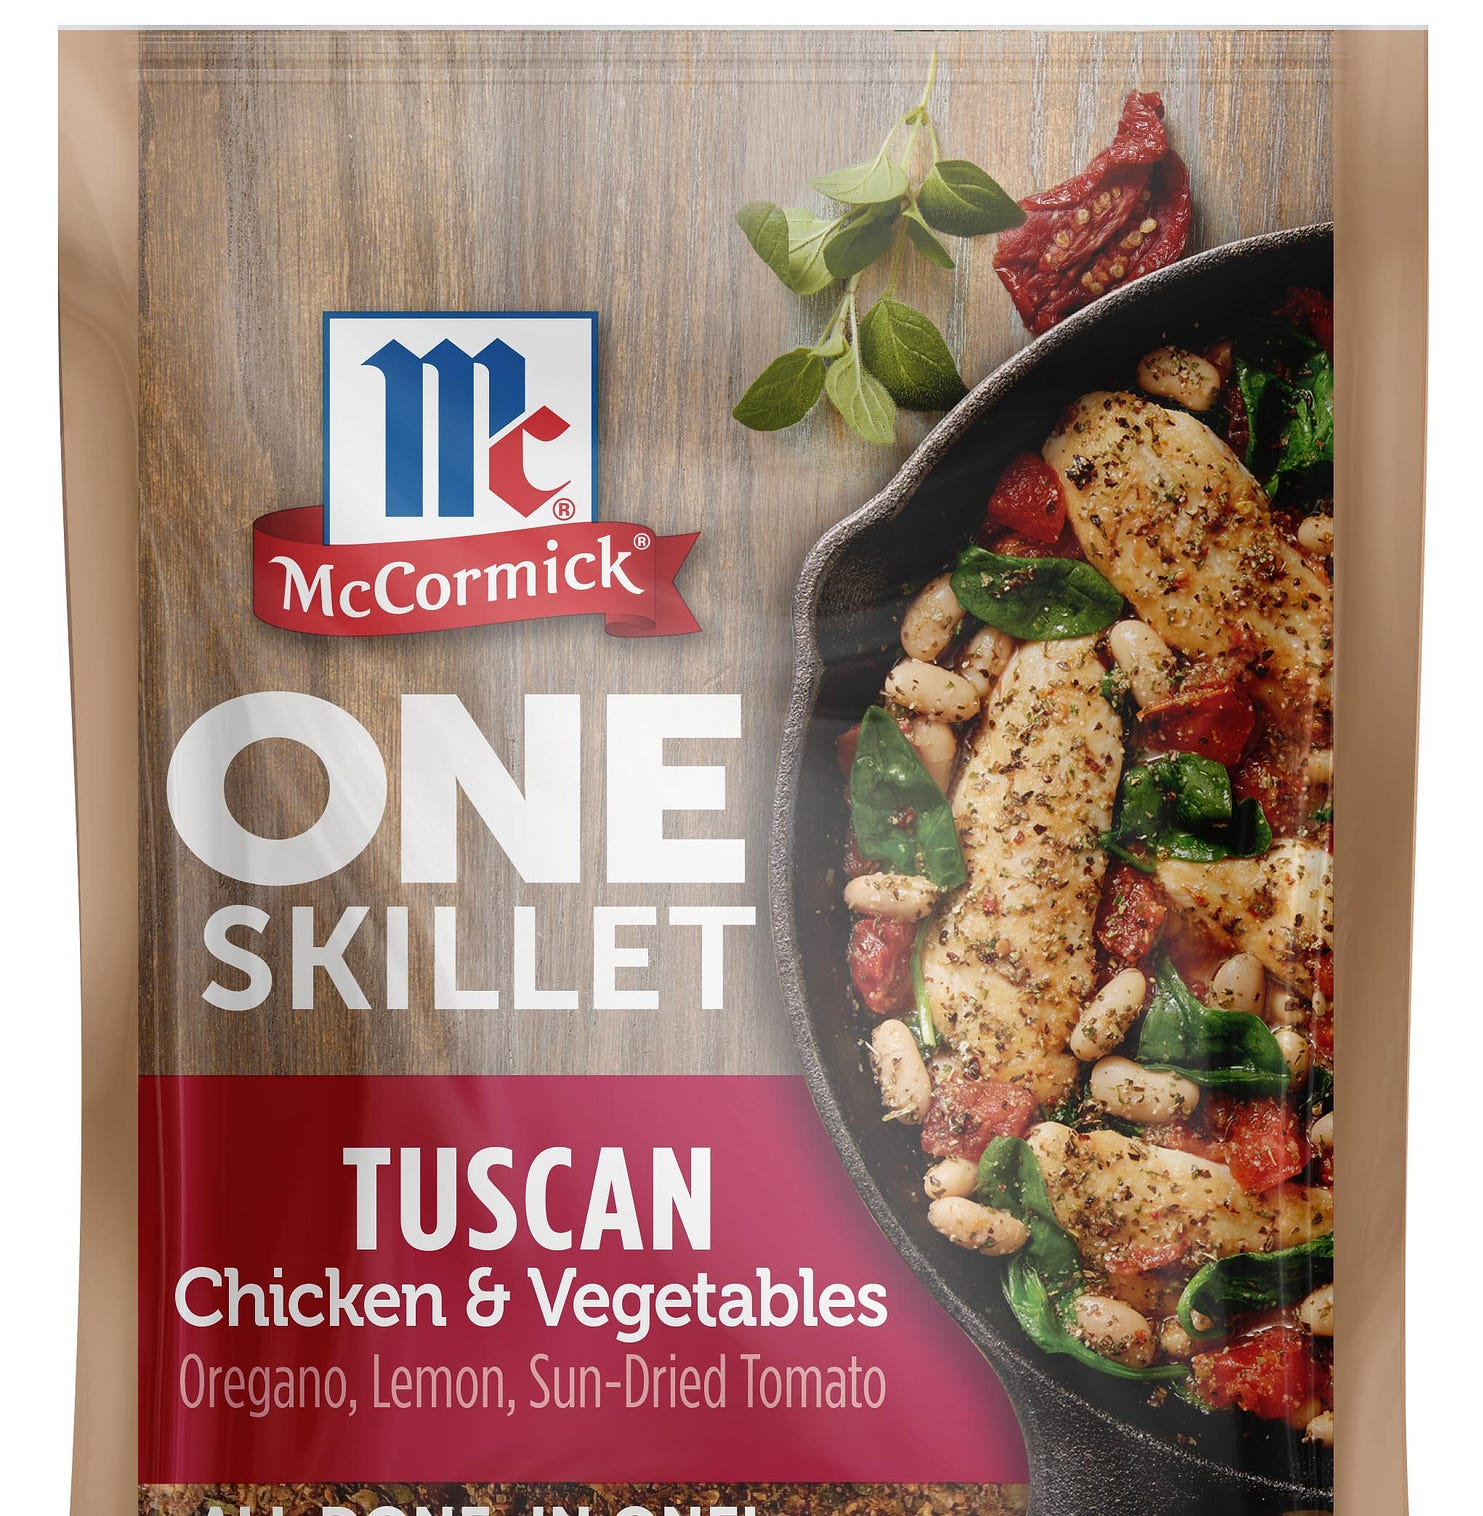 This McCormick meal was produced in part through artificial intelligence.